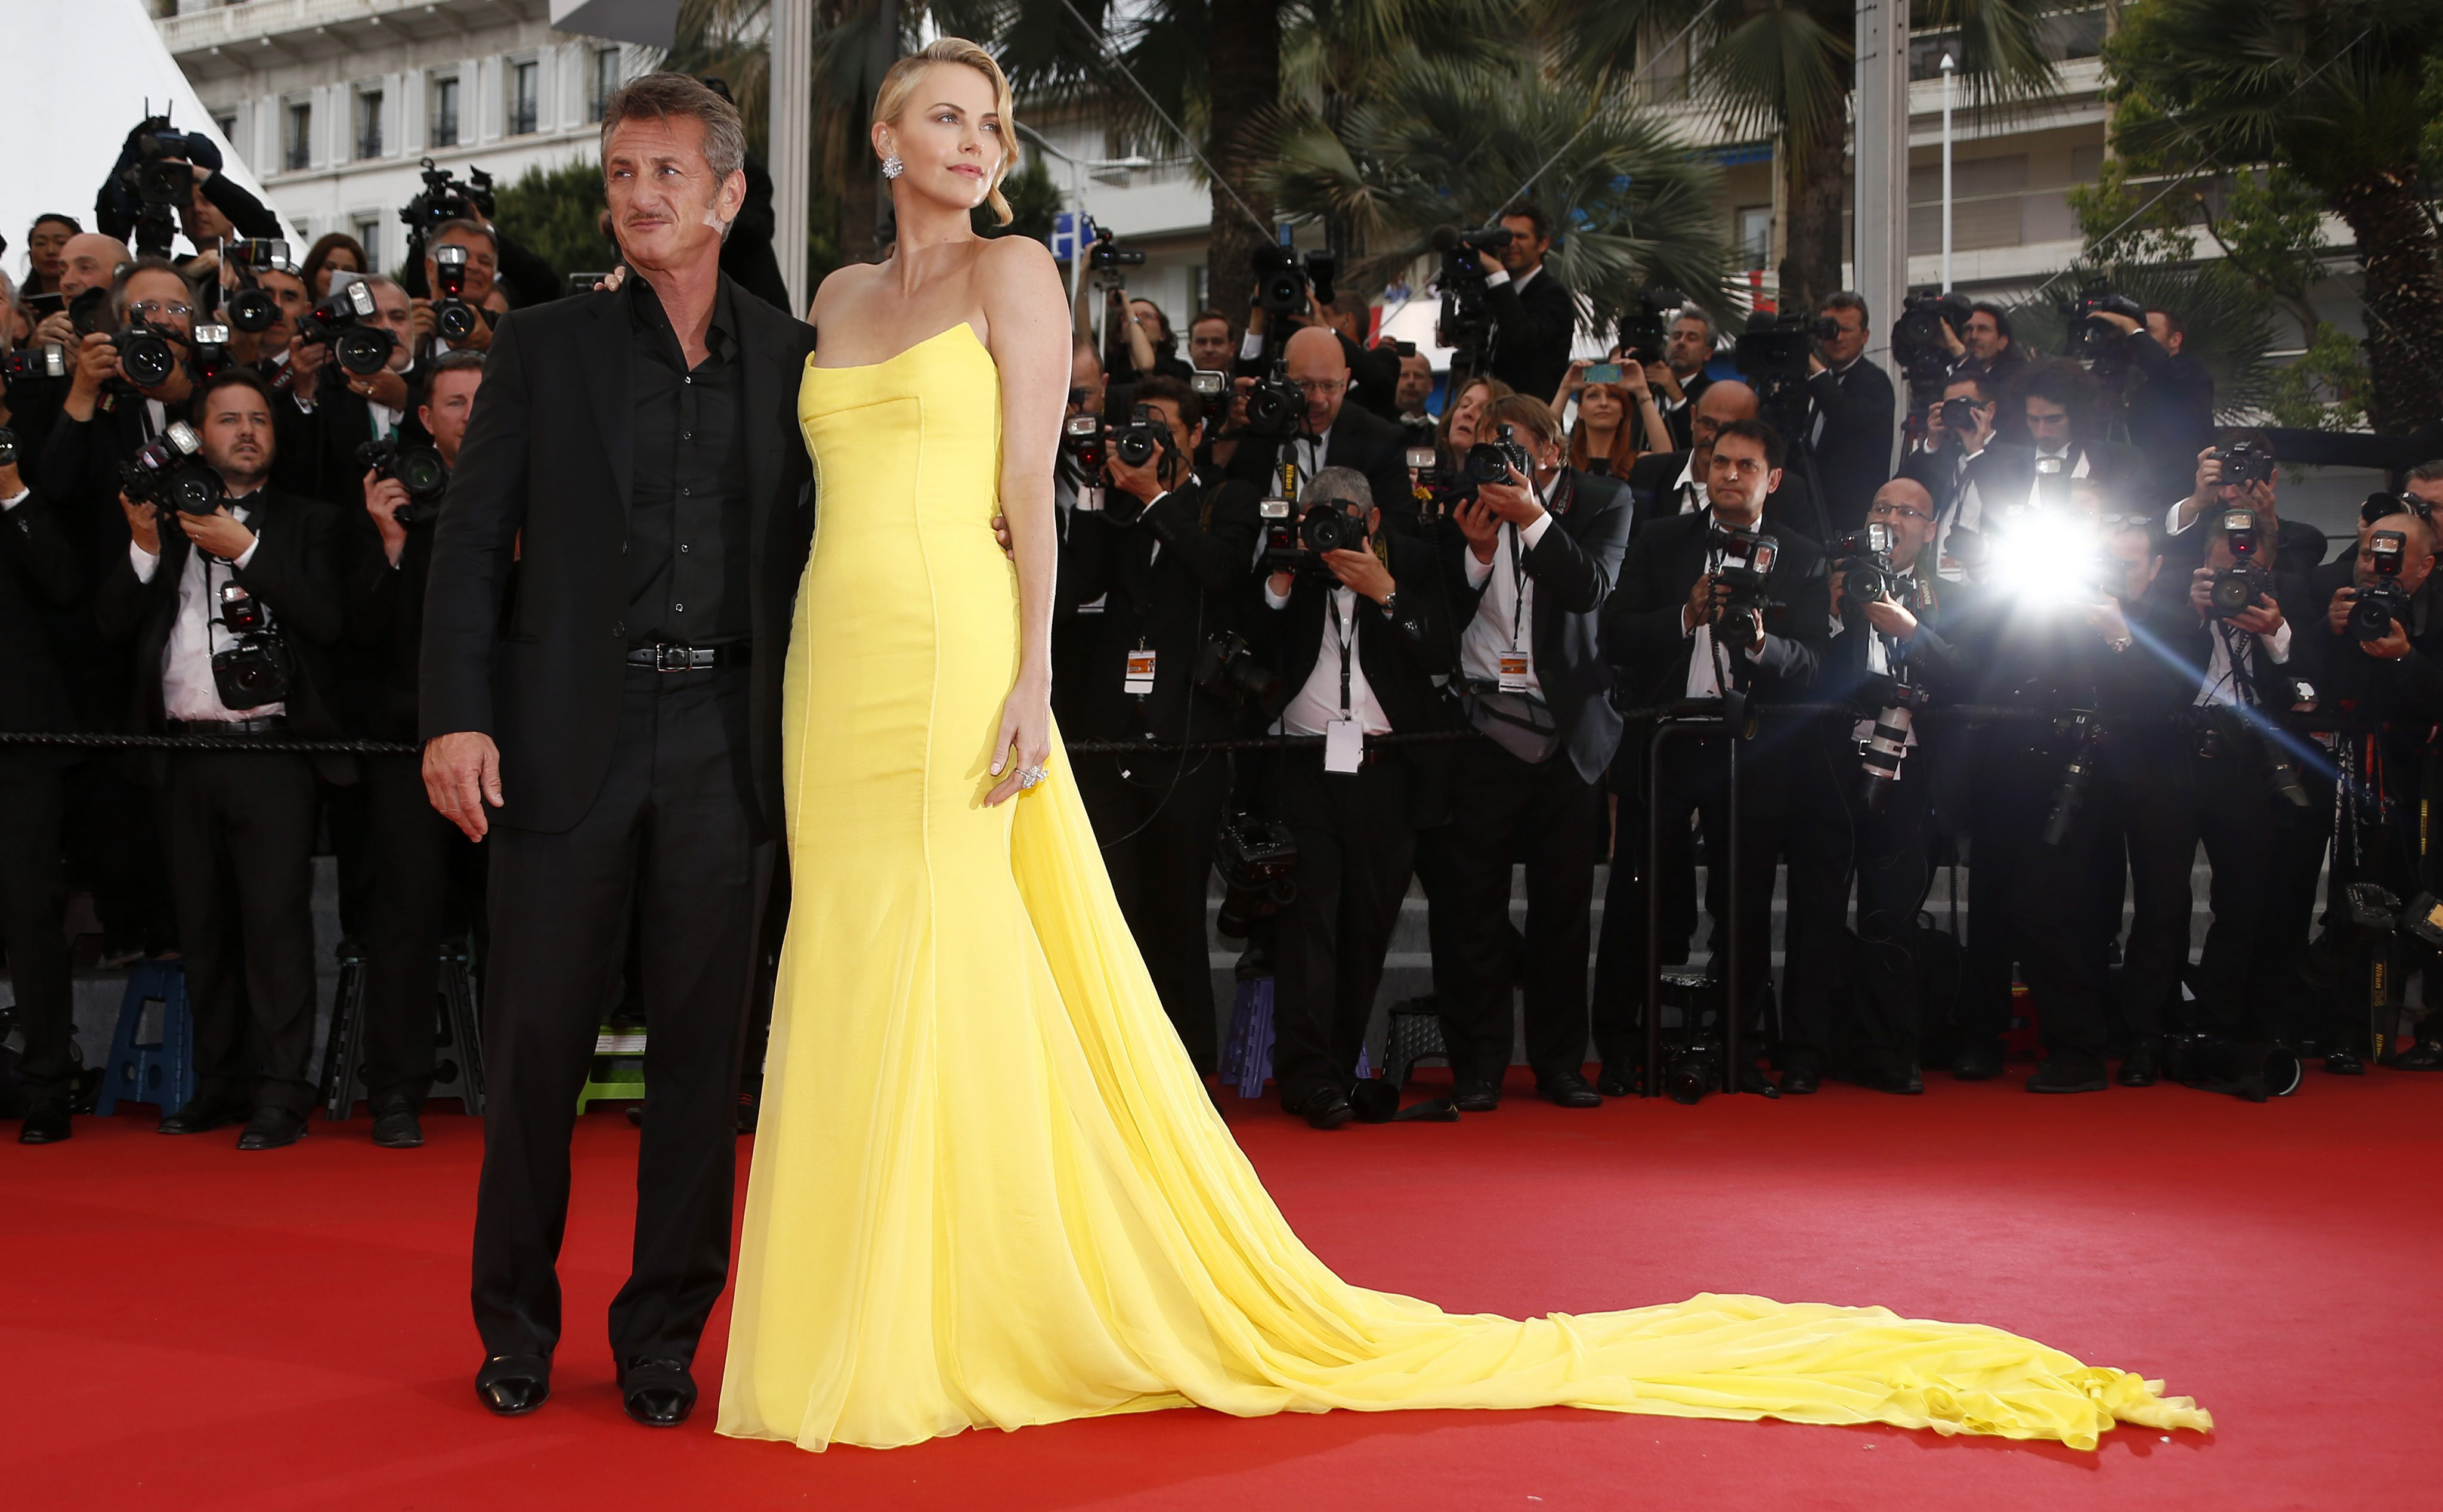 The Best Looks At Cannes 2015